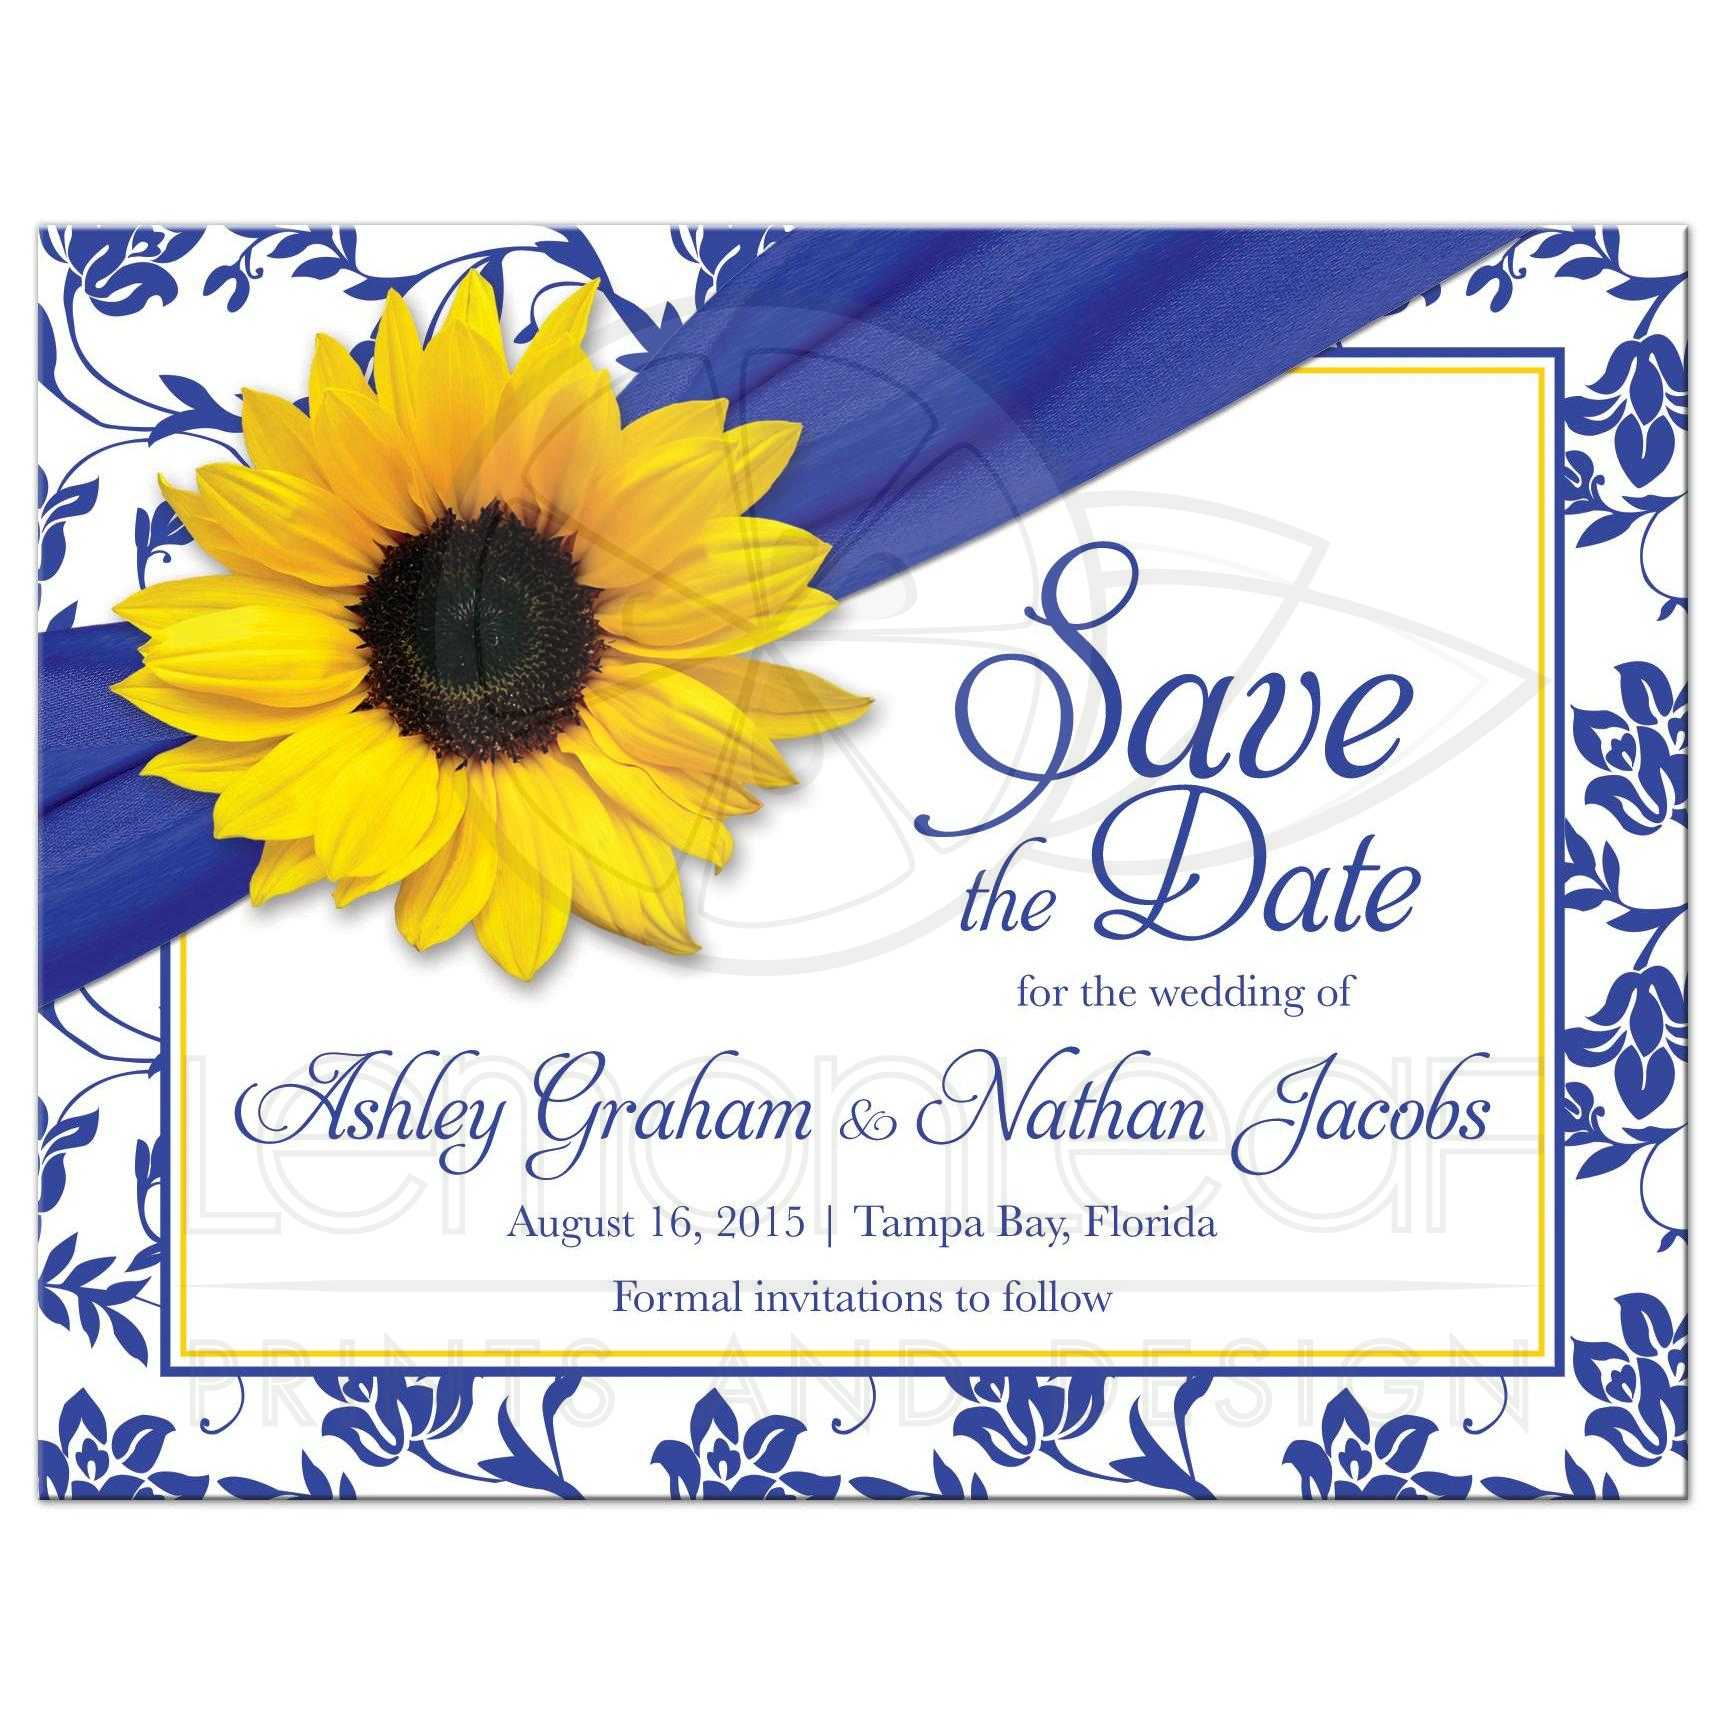 Save the Date Announcement Sunflower Royal Blue Damask